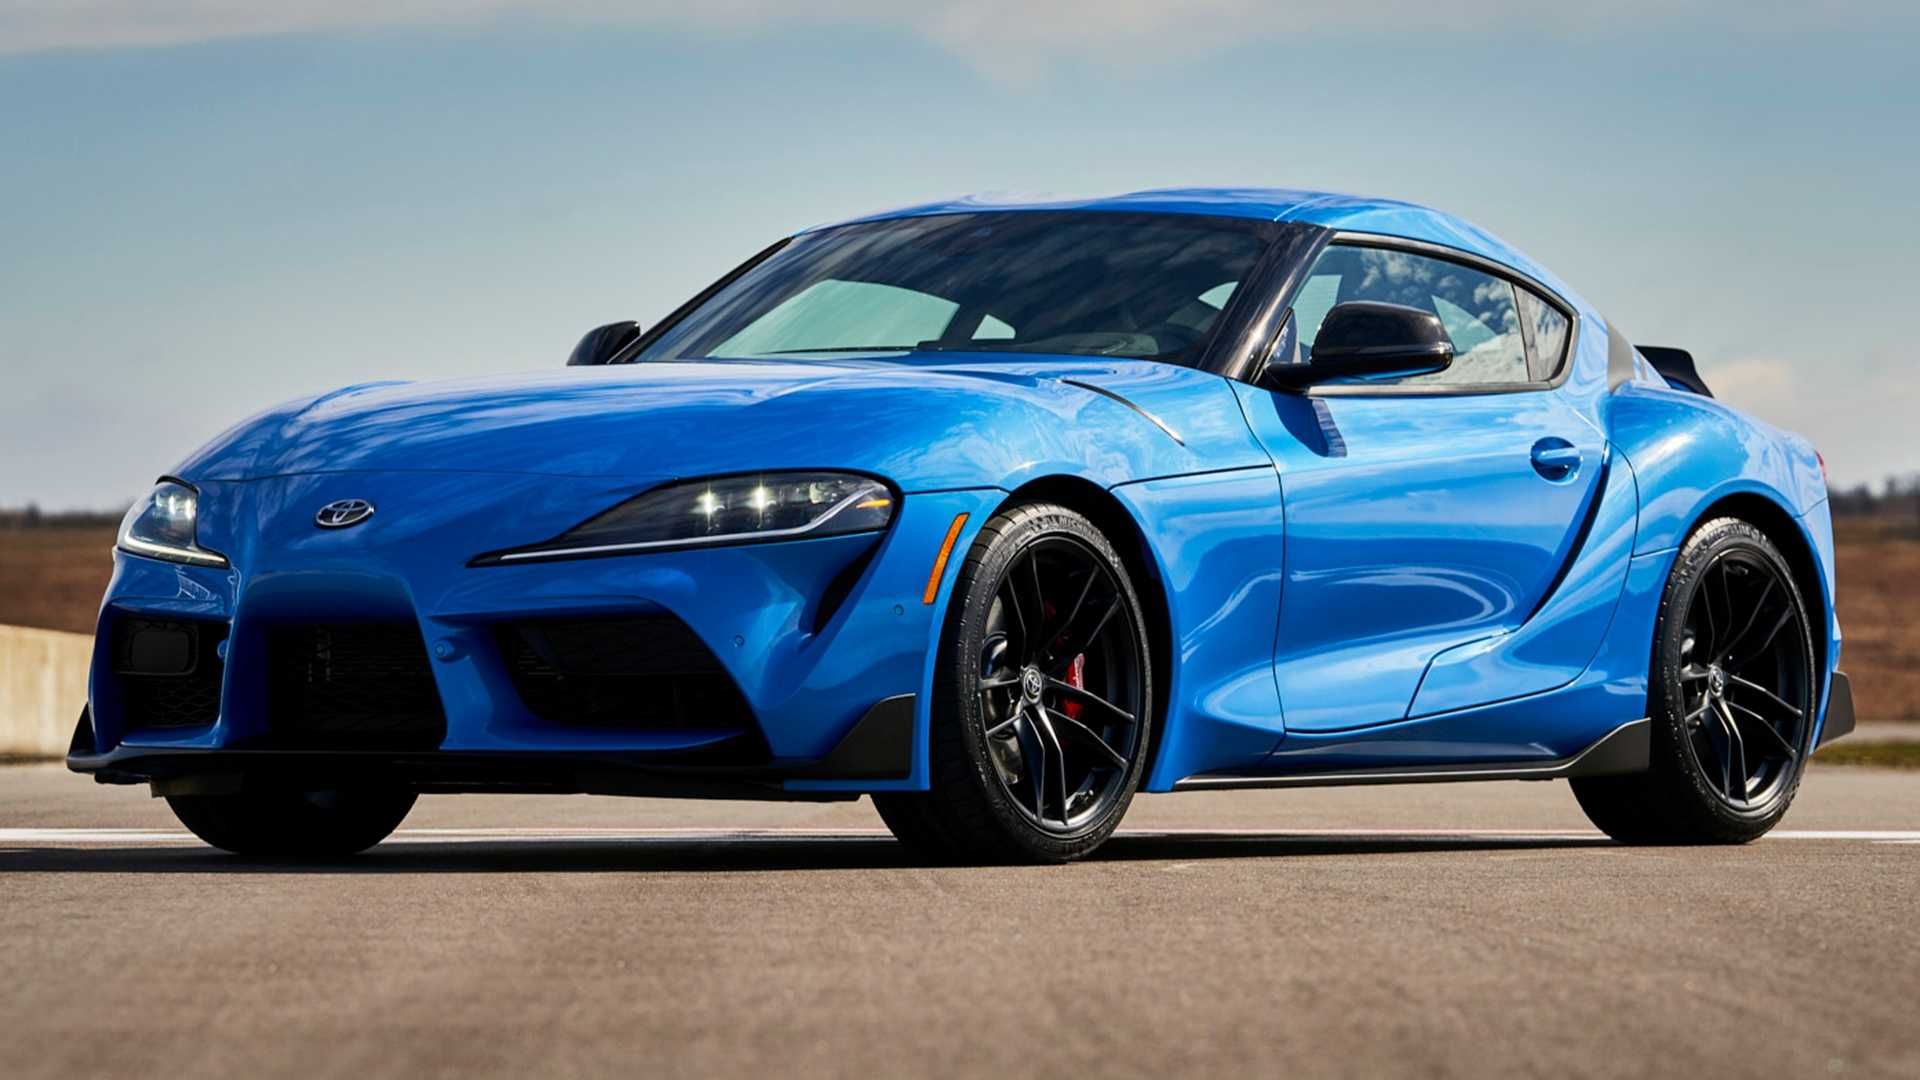 2021 Toyota Supra Dyno Pull Suggests Car Has Way More Than